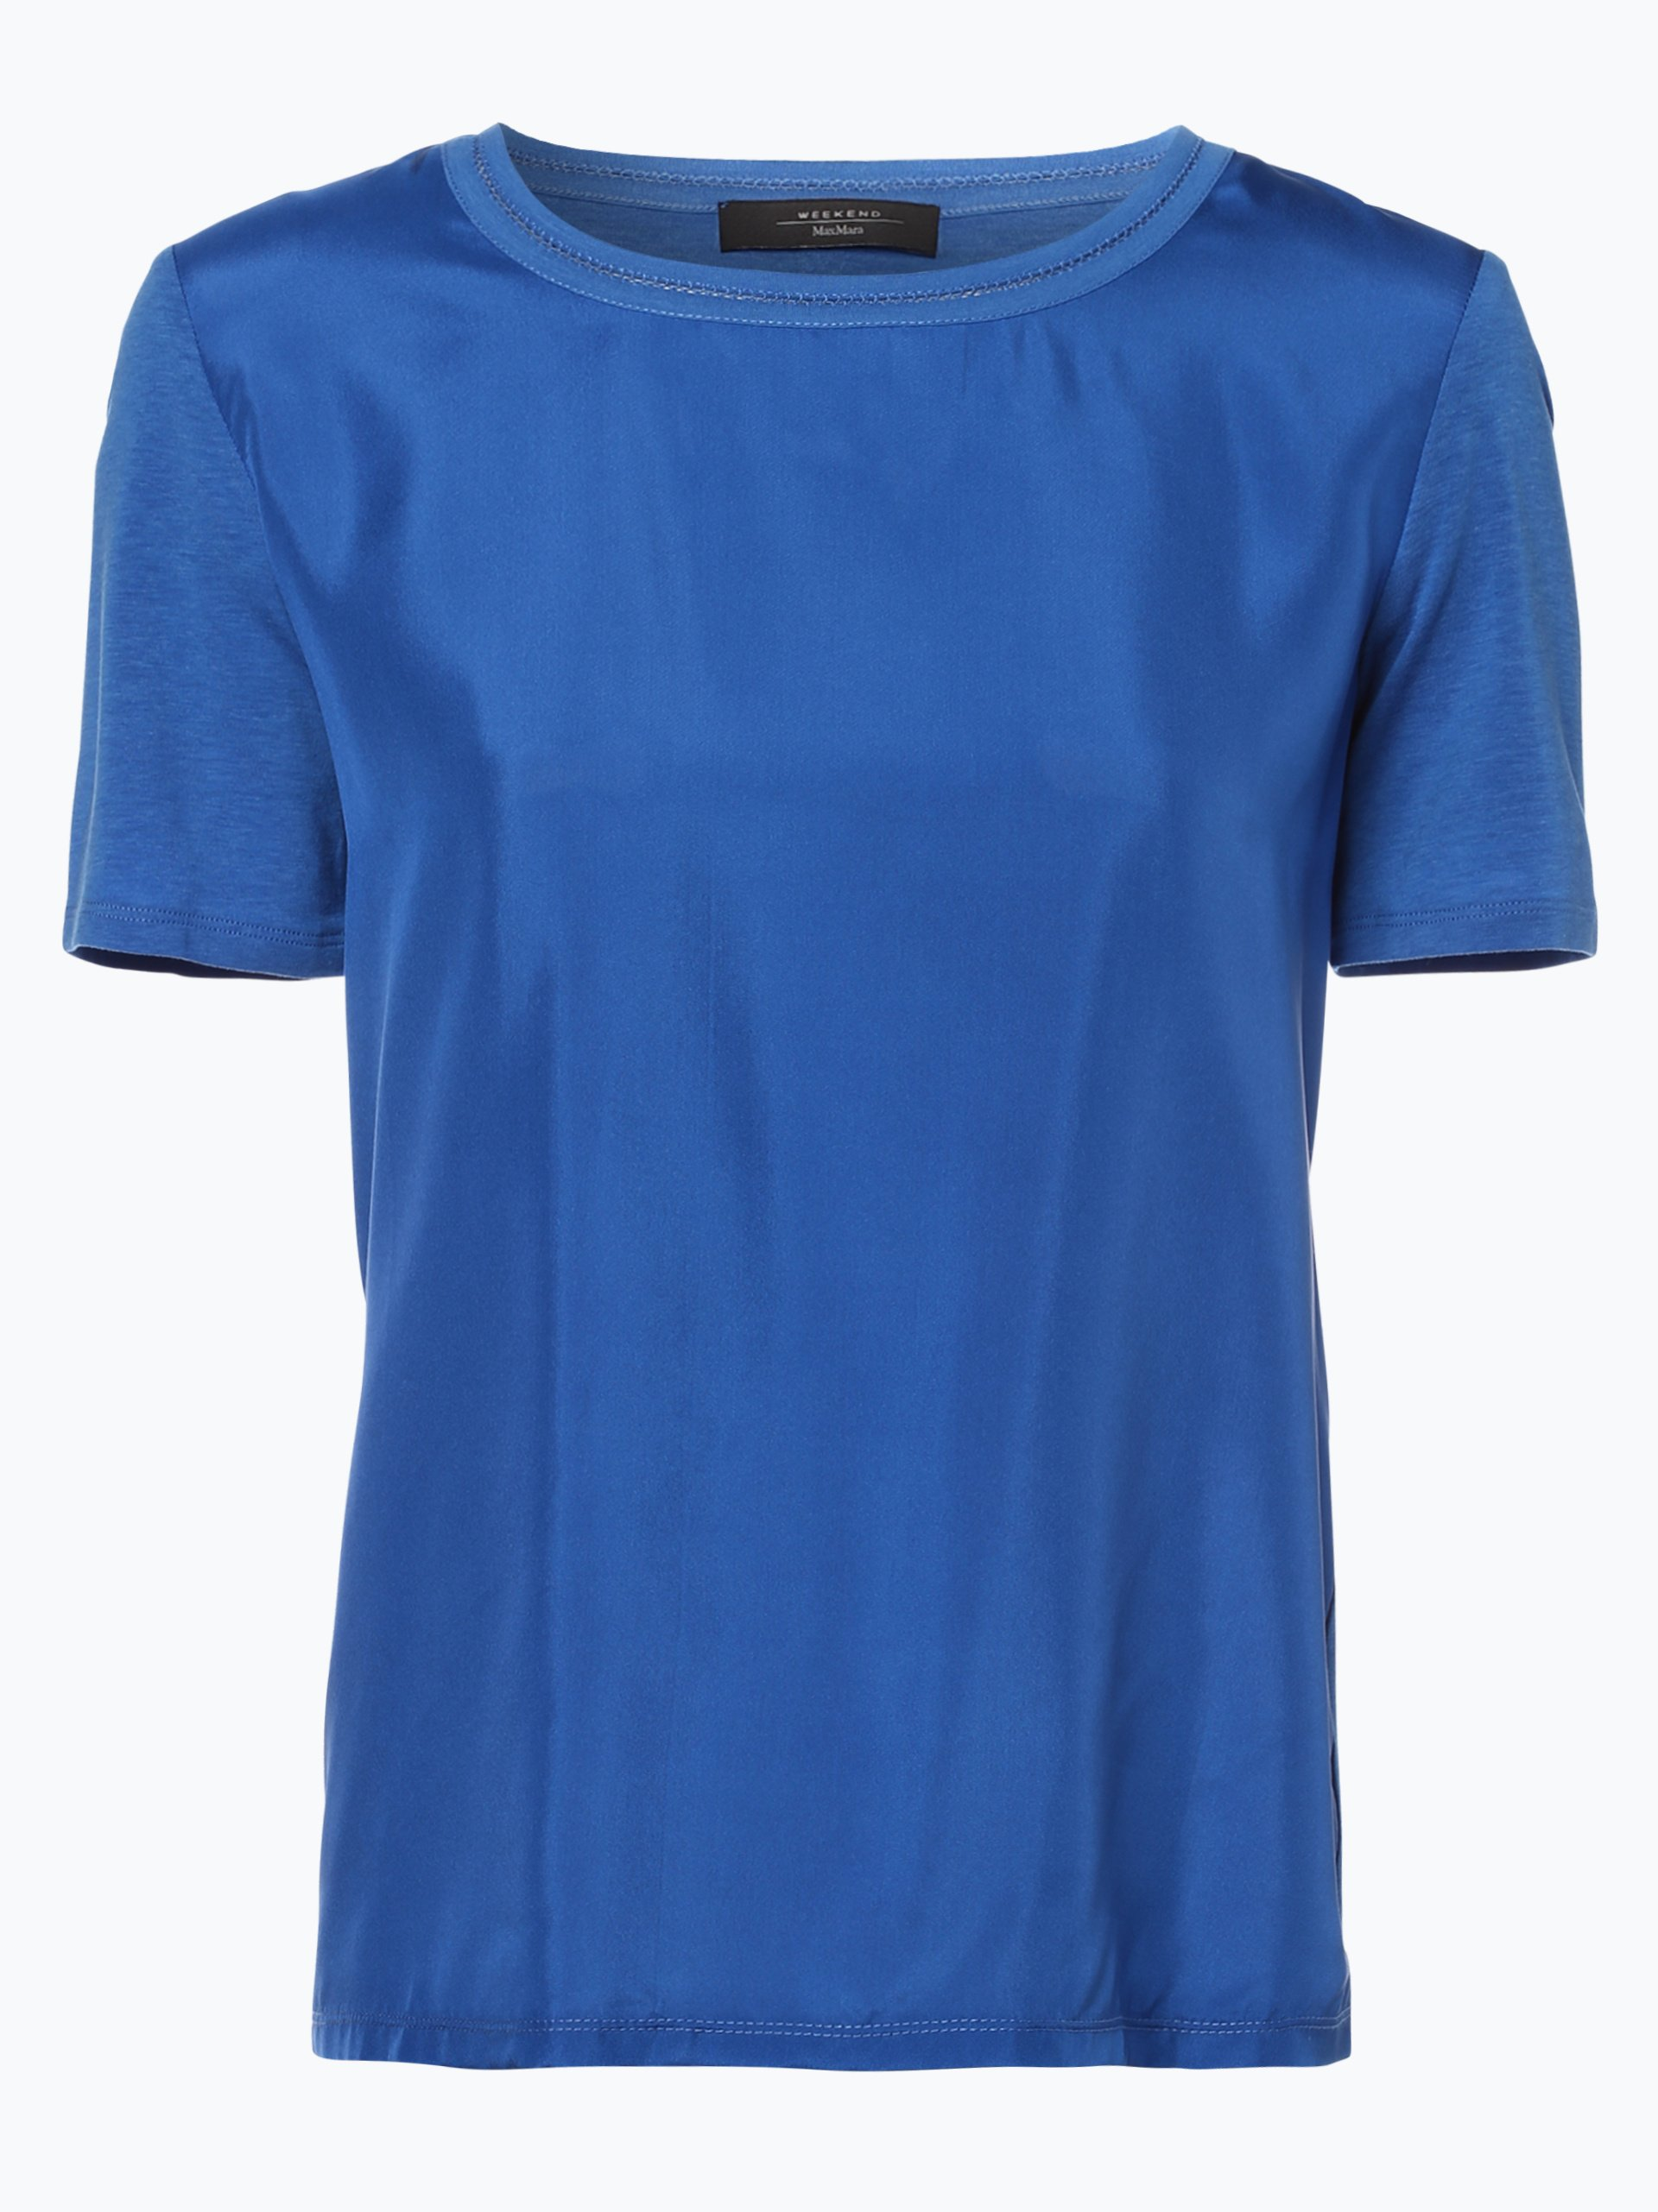 Weekend MaxMara Damen T-Shirt mit Seiden-Anteil